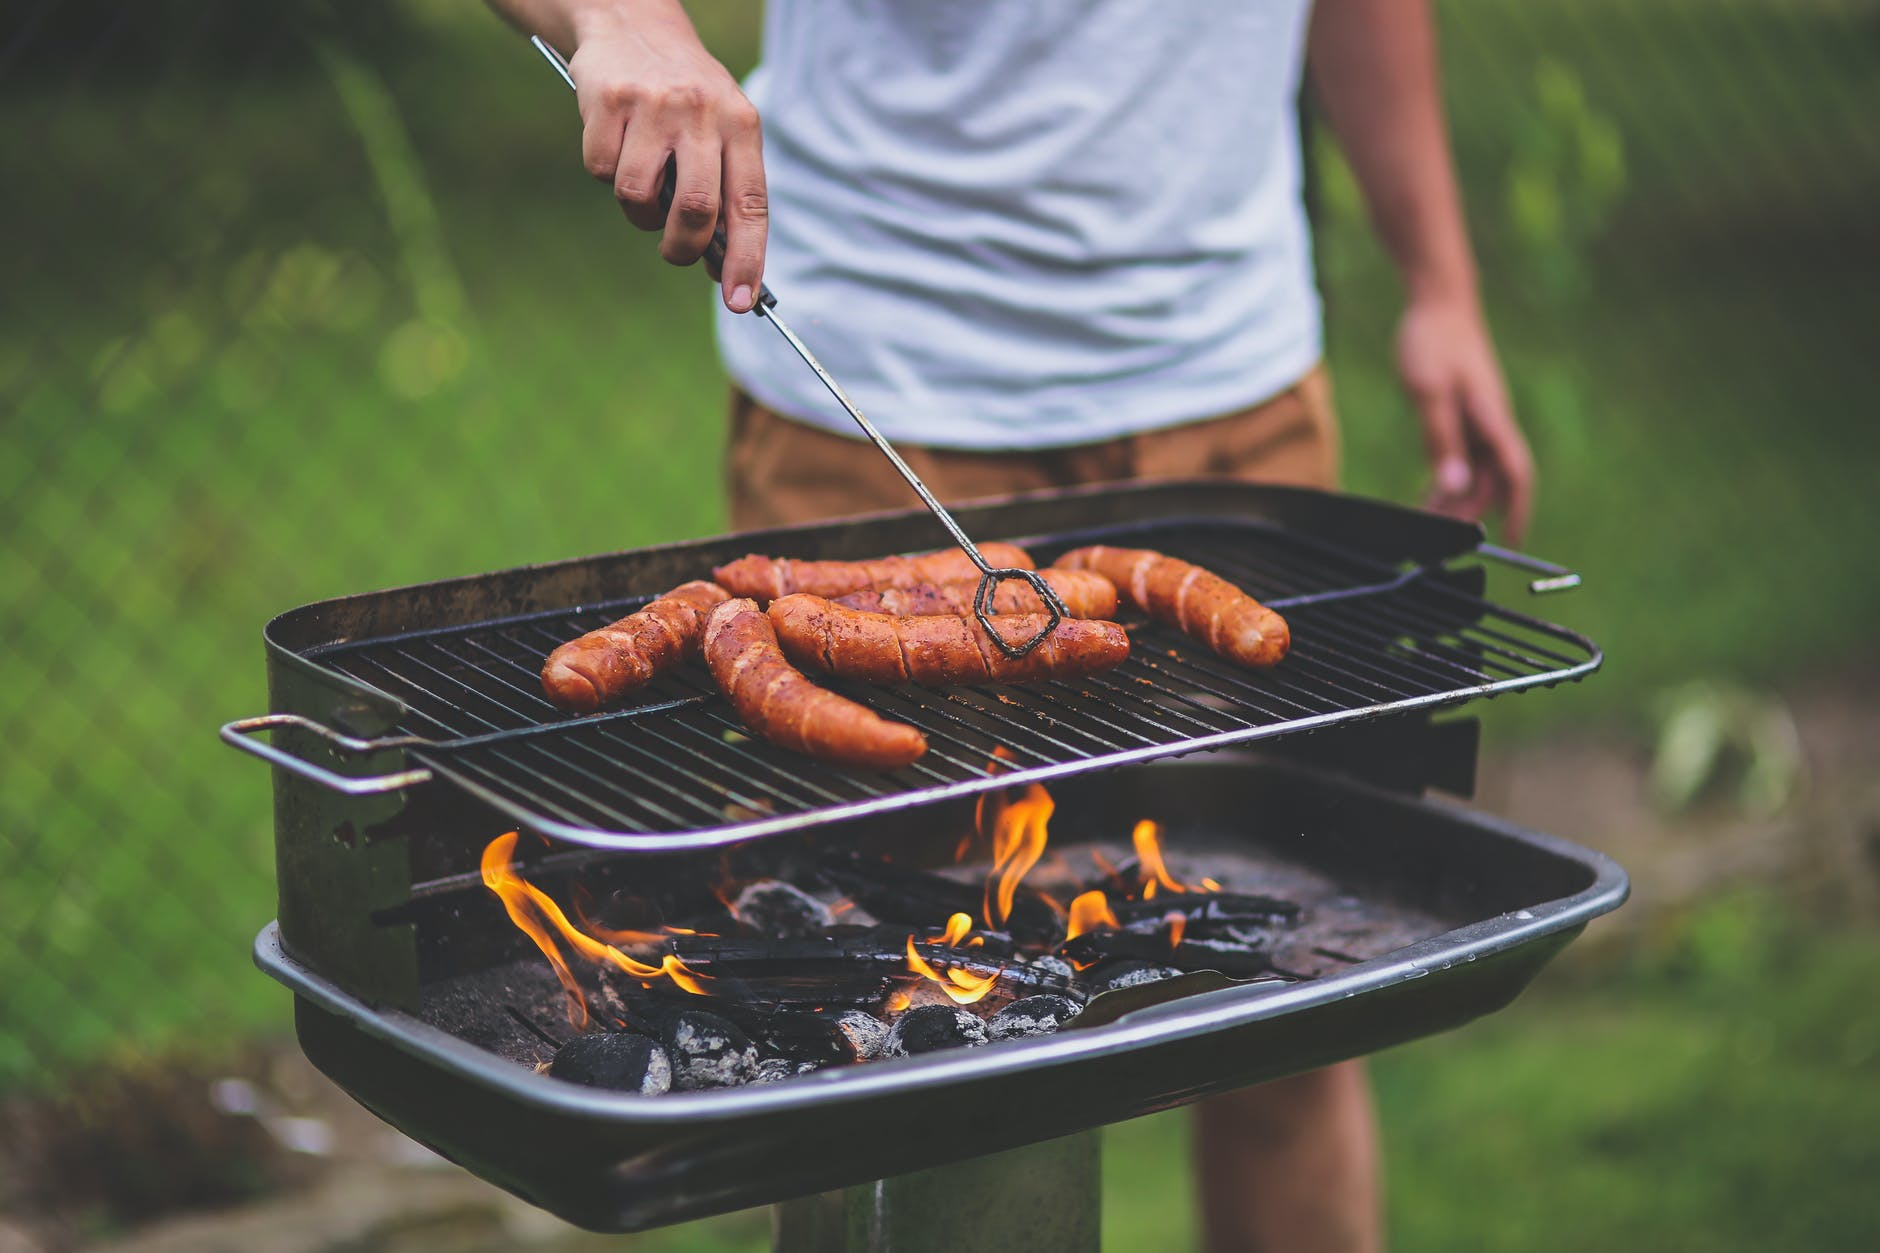 Beat the Heat this Summer with Energy Efficient Tips Like Grilling Outdoors